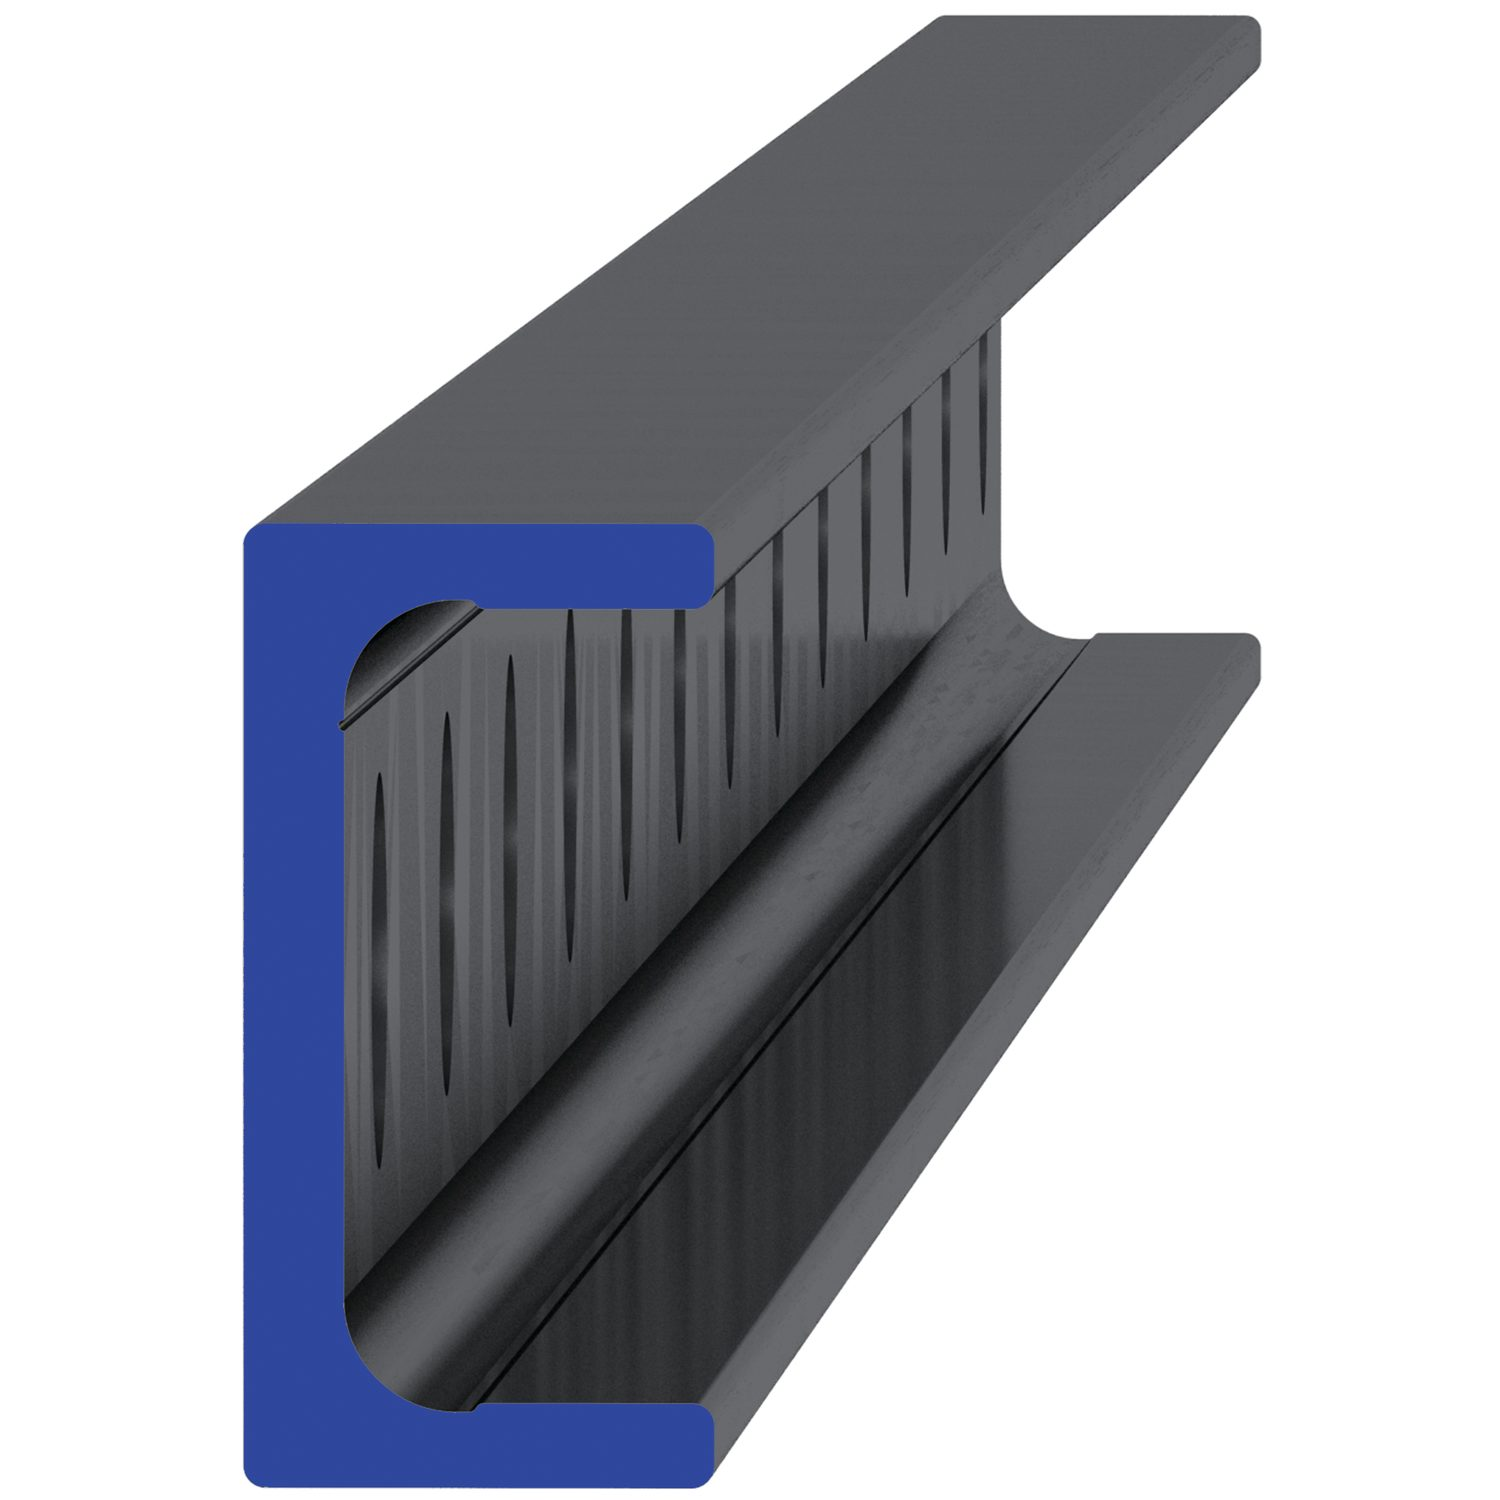 Product L1918.UL, Light Duty U Rail counterbored holes /